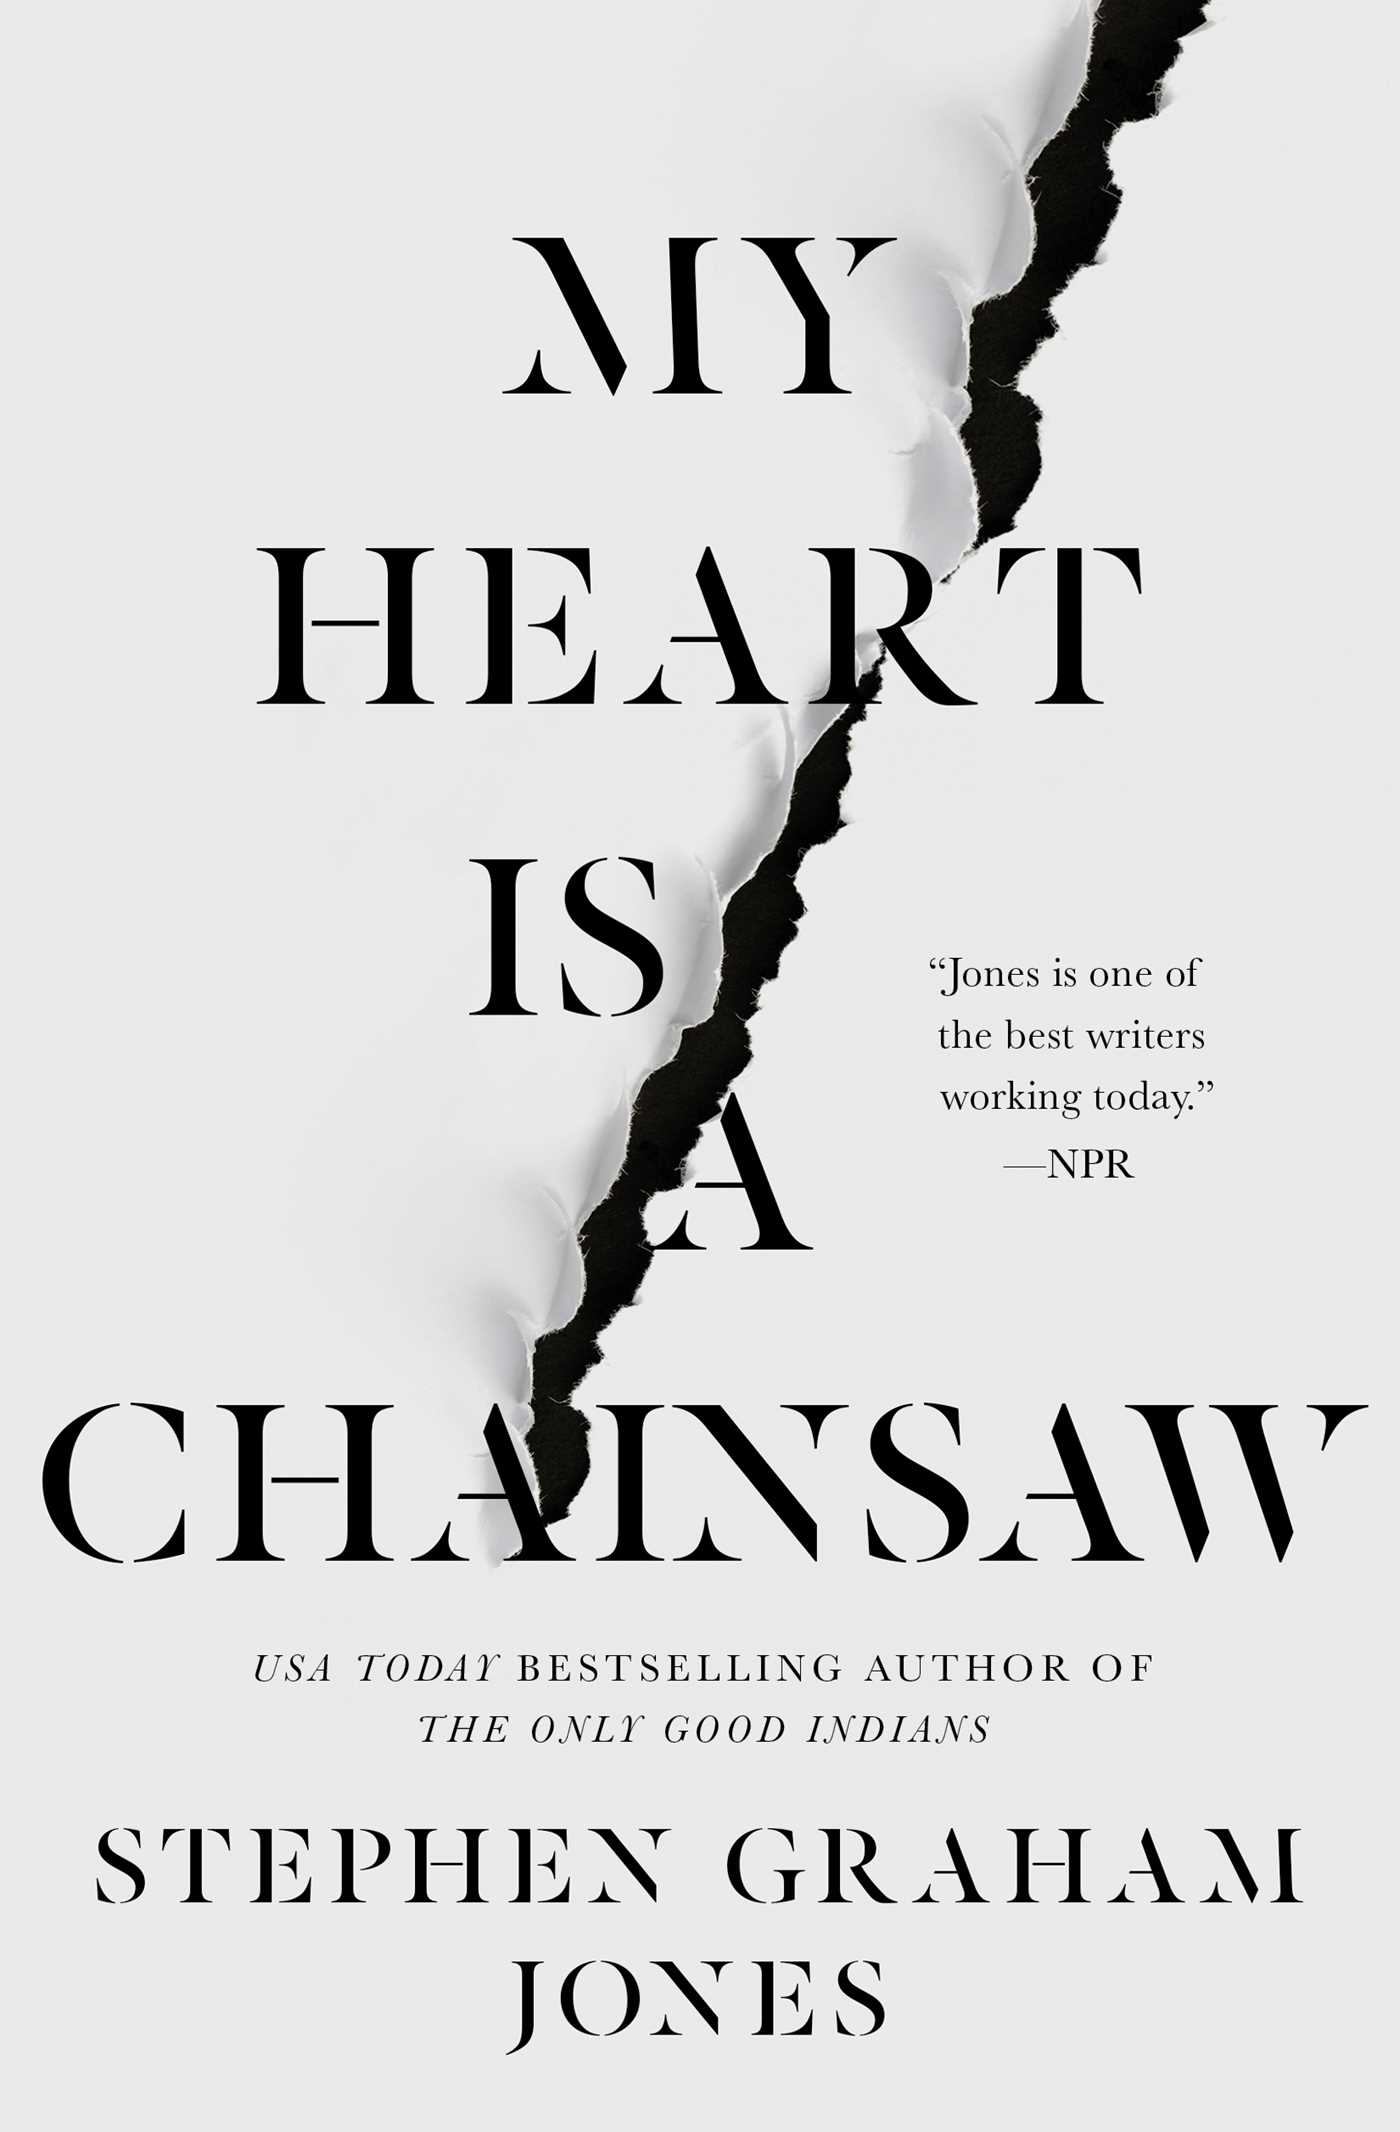 When Does My Heart Is A Chainsaw Come Out? Stephen Graham Jones 2021 New Releases